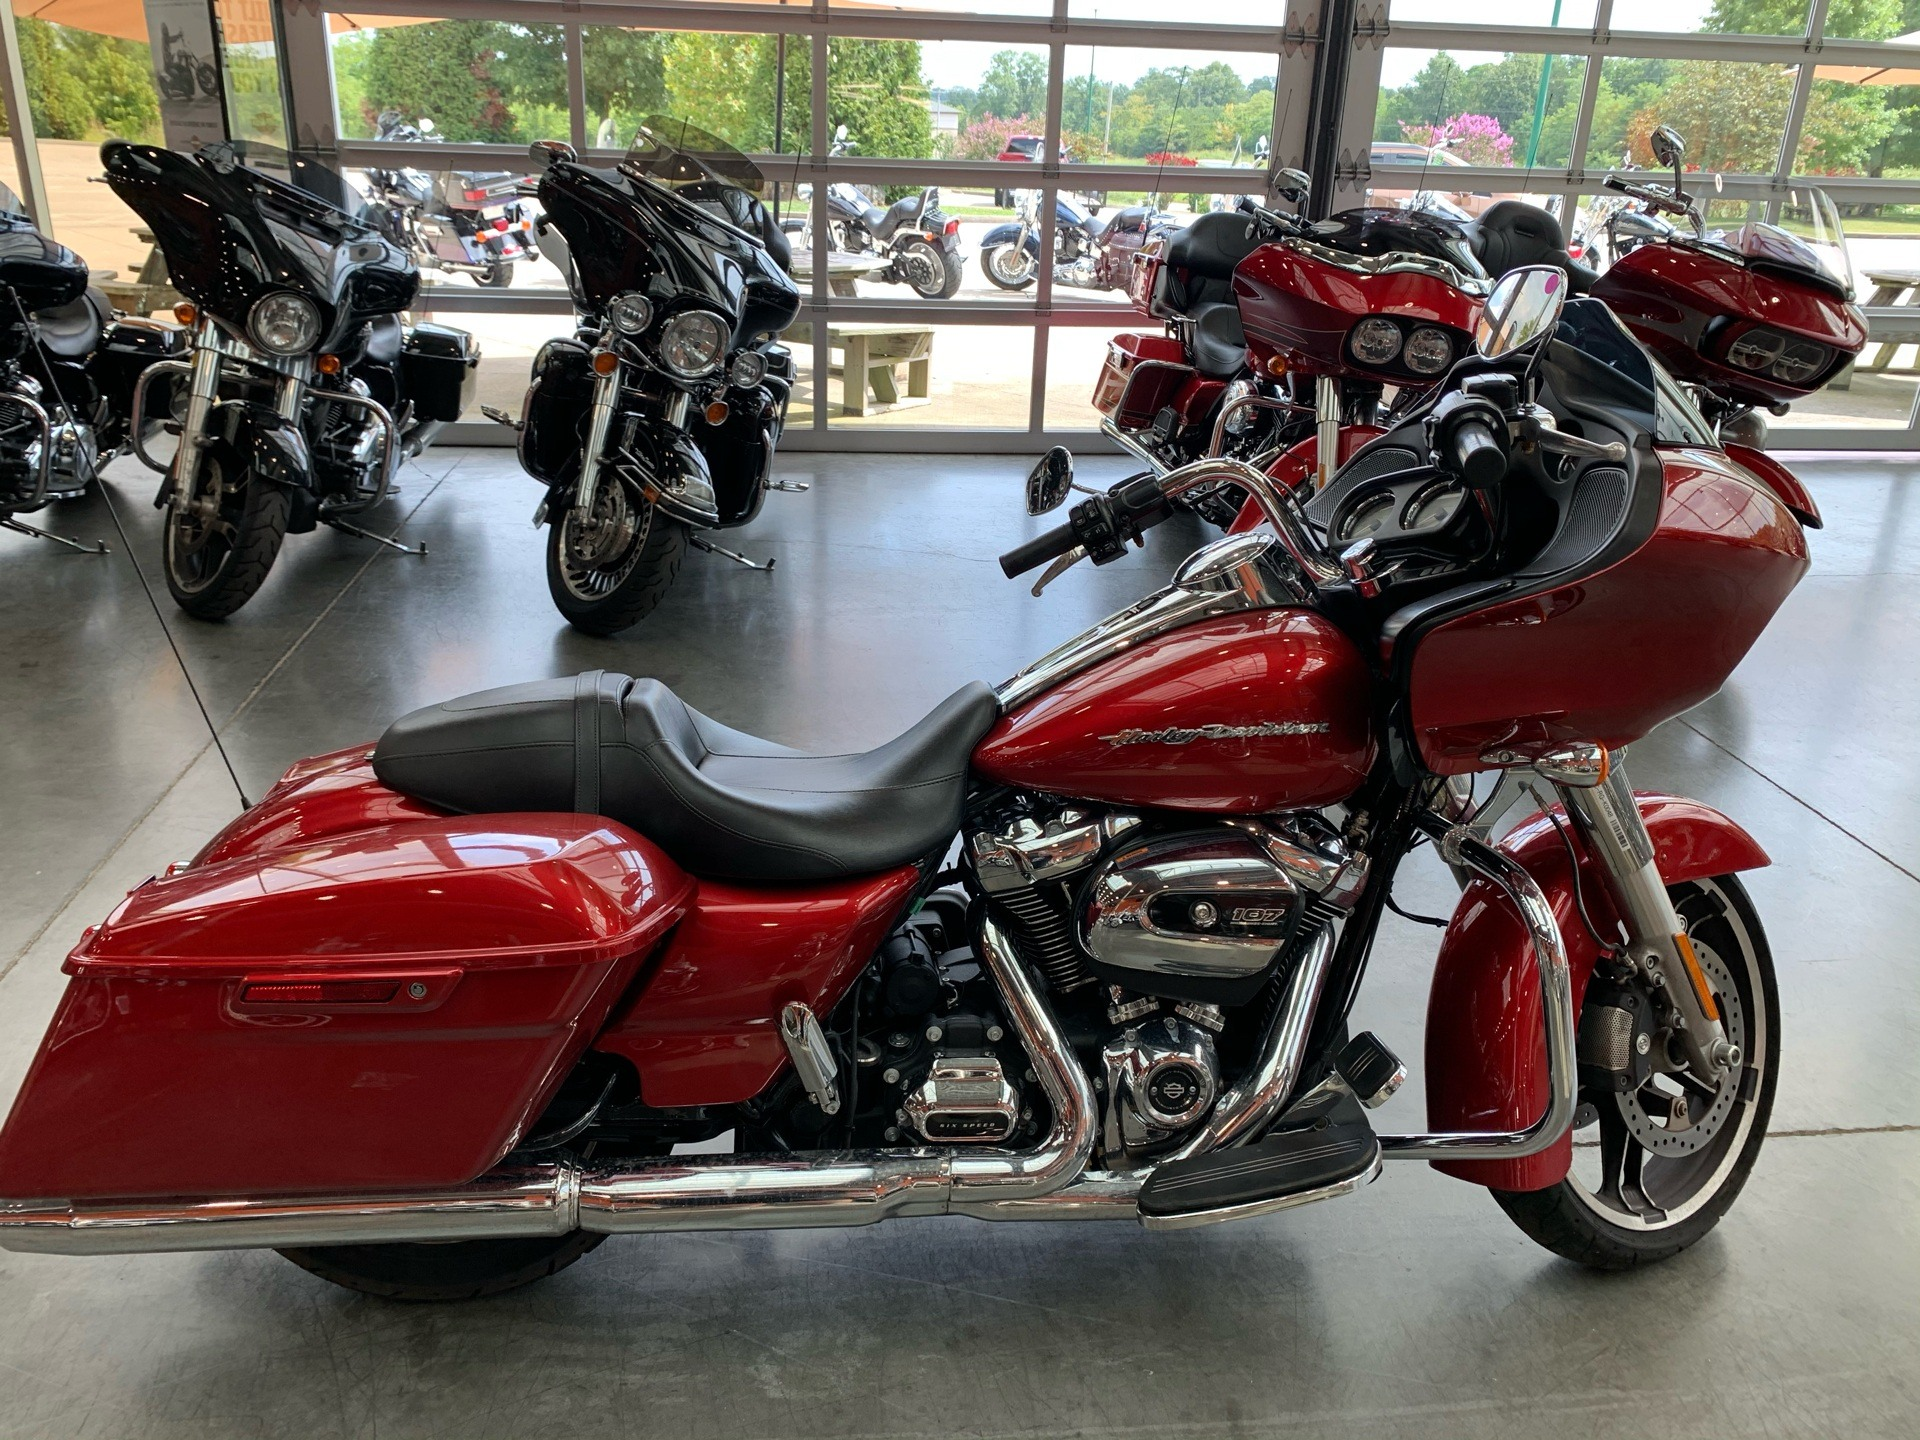 2019 Harley-Davidson FLTR in Columbia, Tennessee - Photo 1